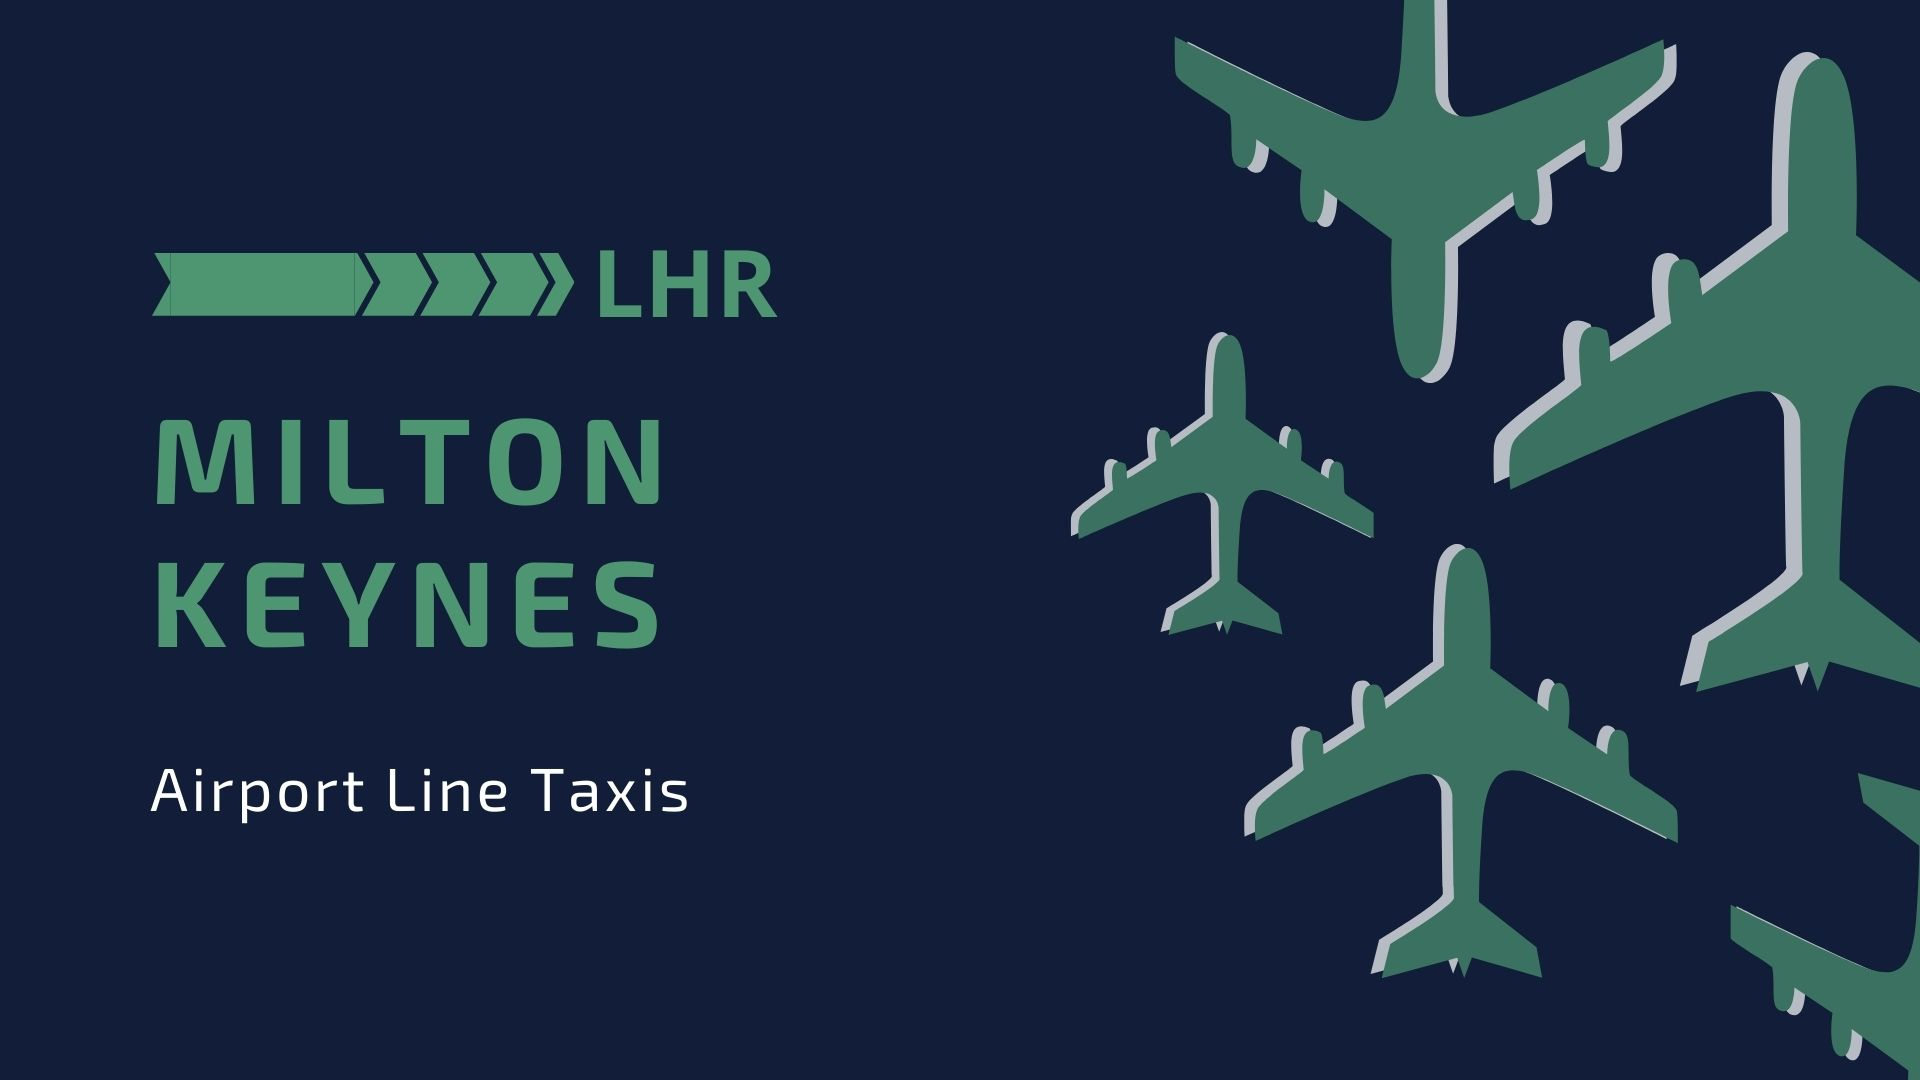 , Airport Line Taxis